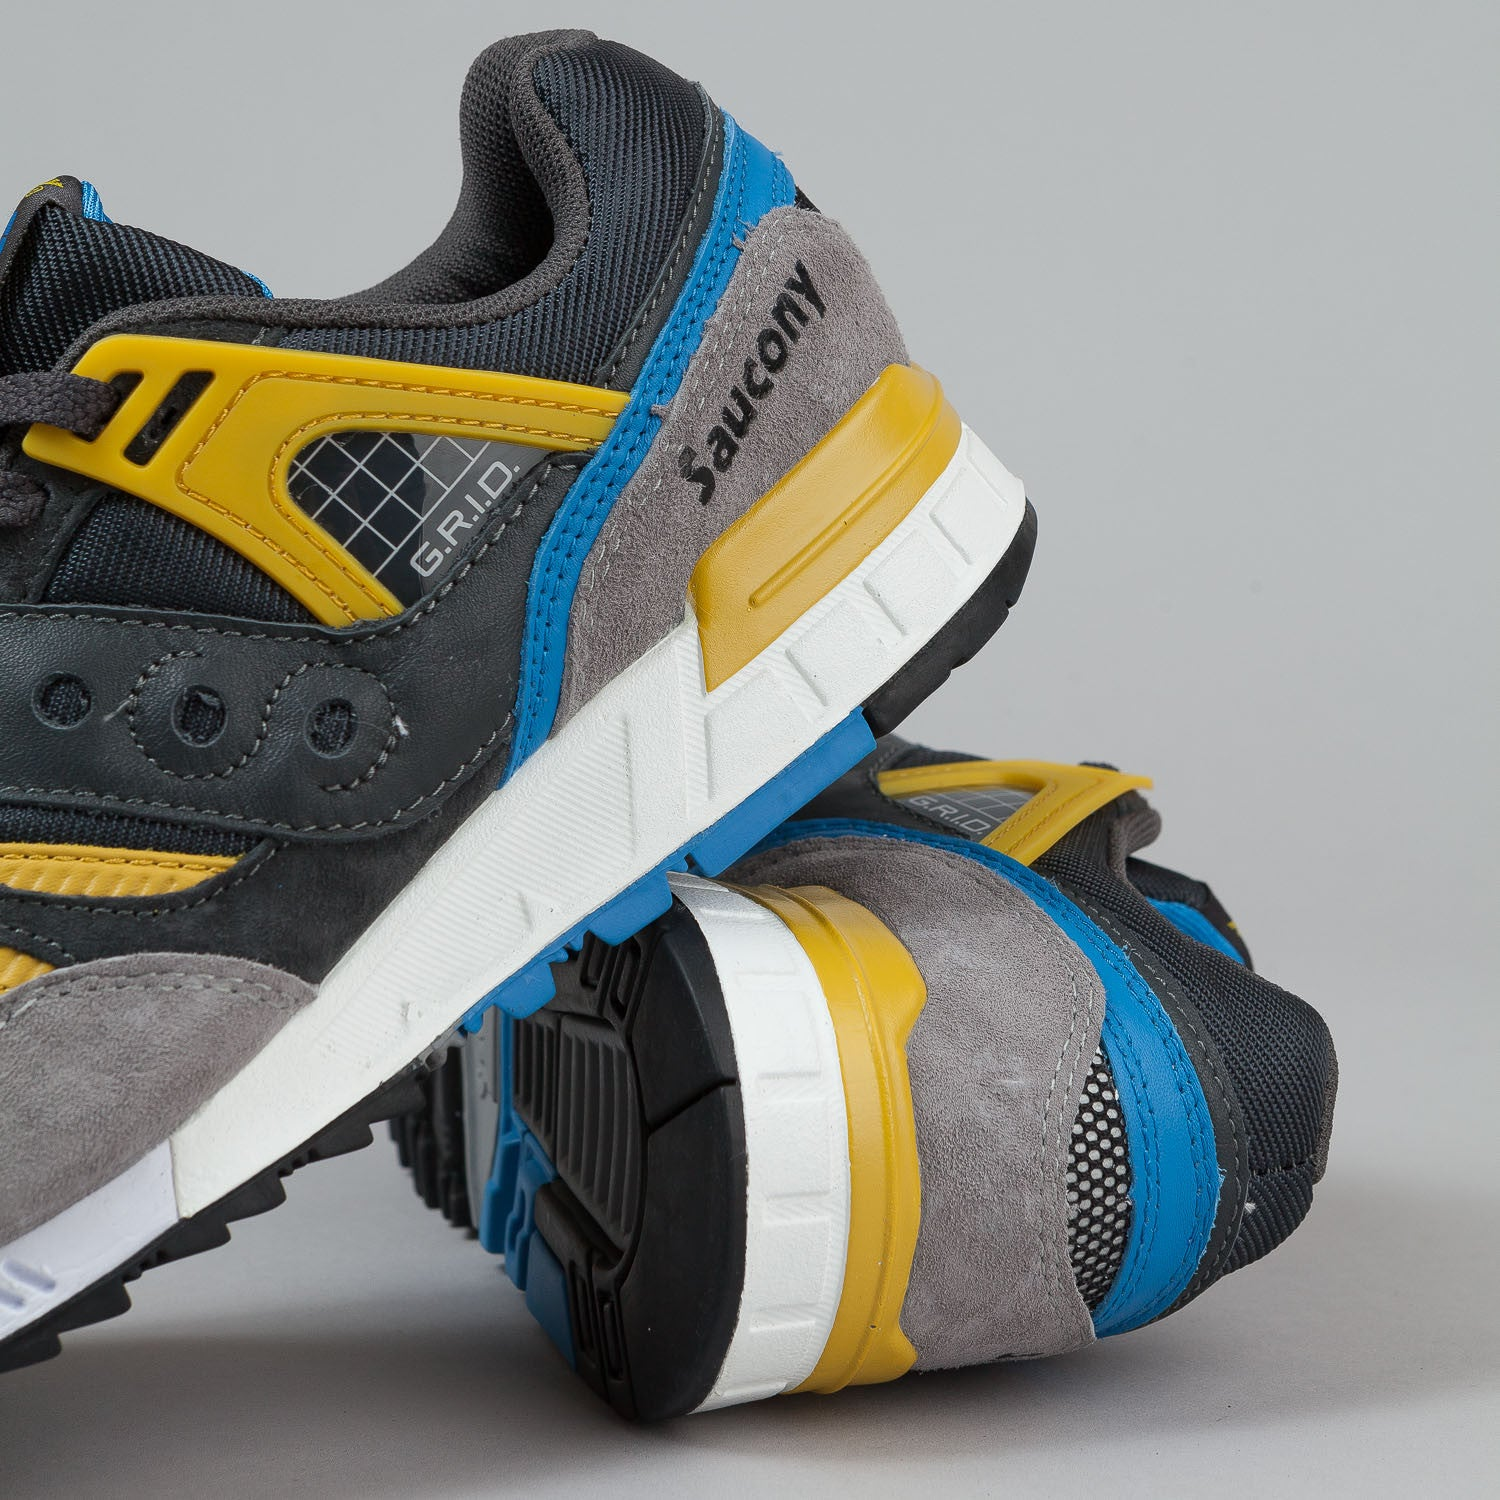 Saucony Grid SD Premium Shoes 'Grid Games' - Grey / Yellow